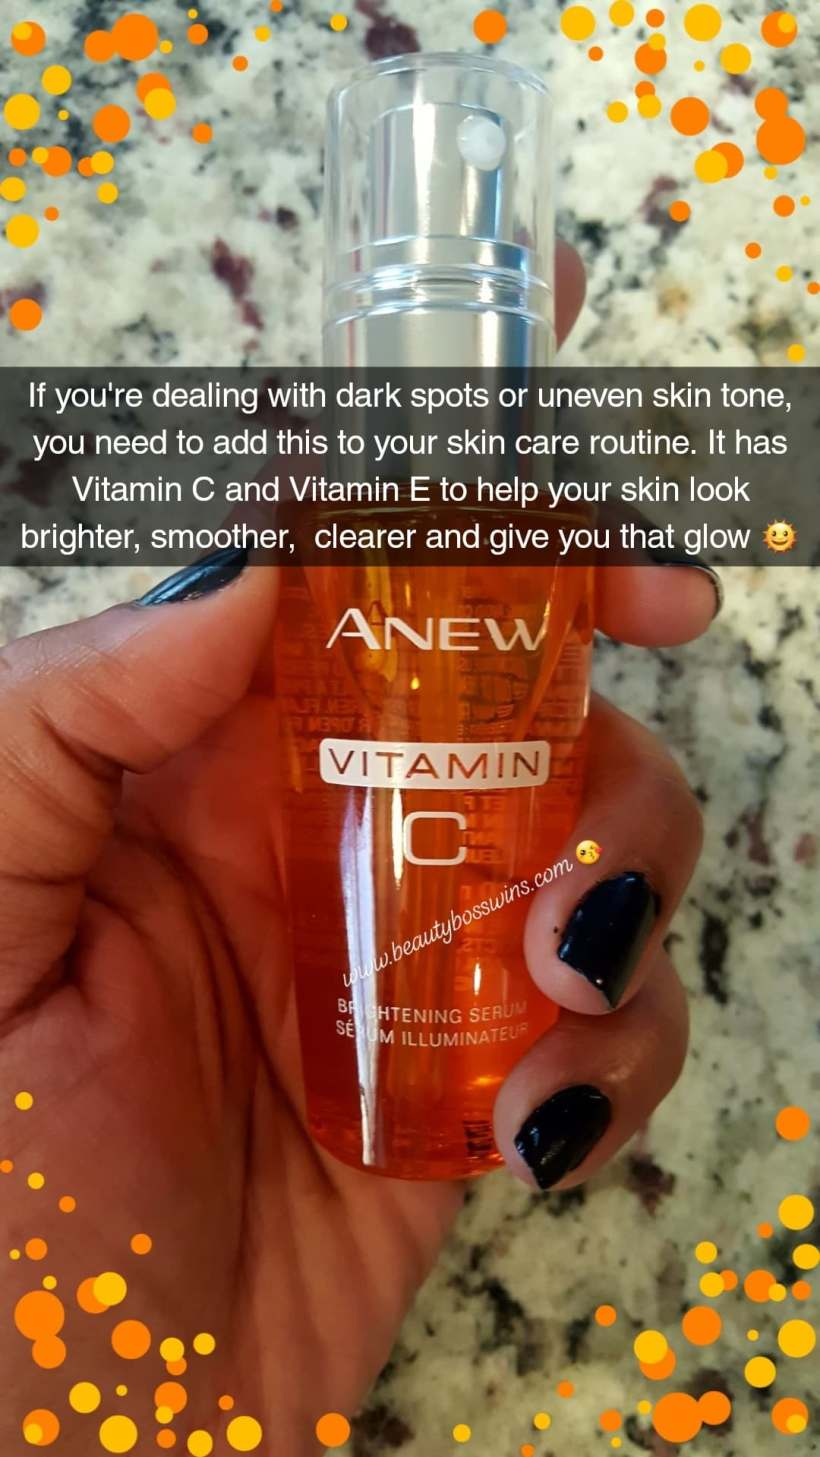 how to brighten skin, skin care routine, vitamin c benefits